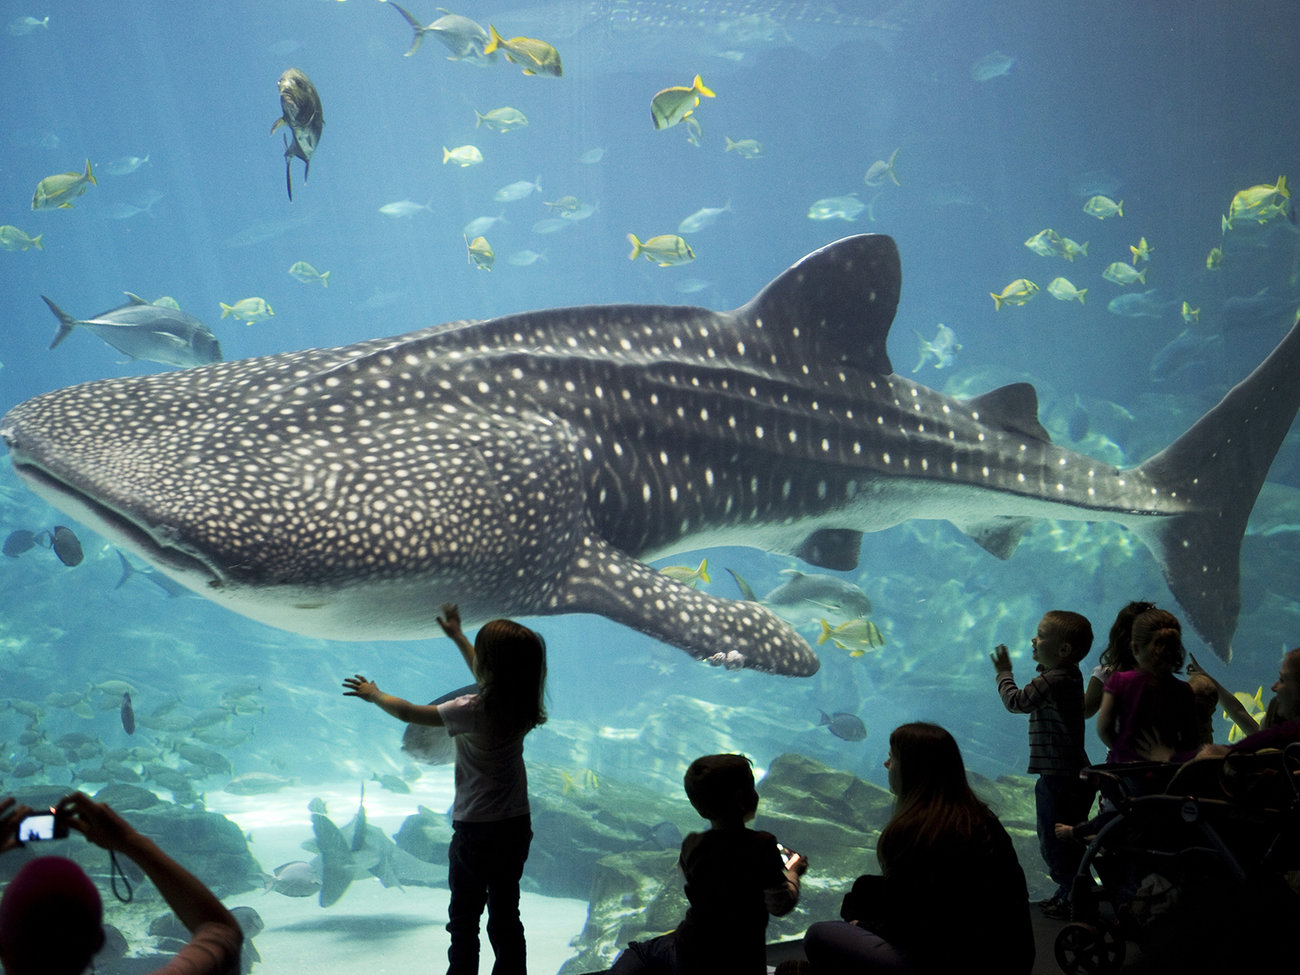 Explore Atlanta with a CityPASS ticket booklet that saves 40% off admission to Georgia Aquarium Anytime Pass, plus 4 more top Atlanta attractions. It allows you to skip most ticket lines and is valid 9 days from the first booklet use.